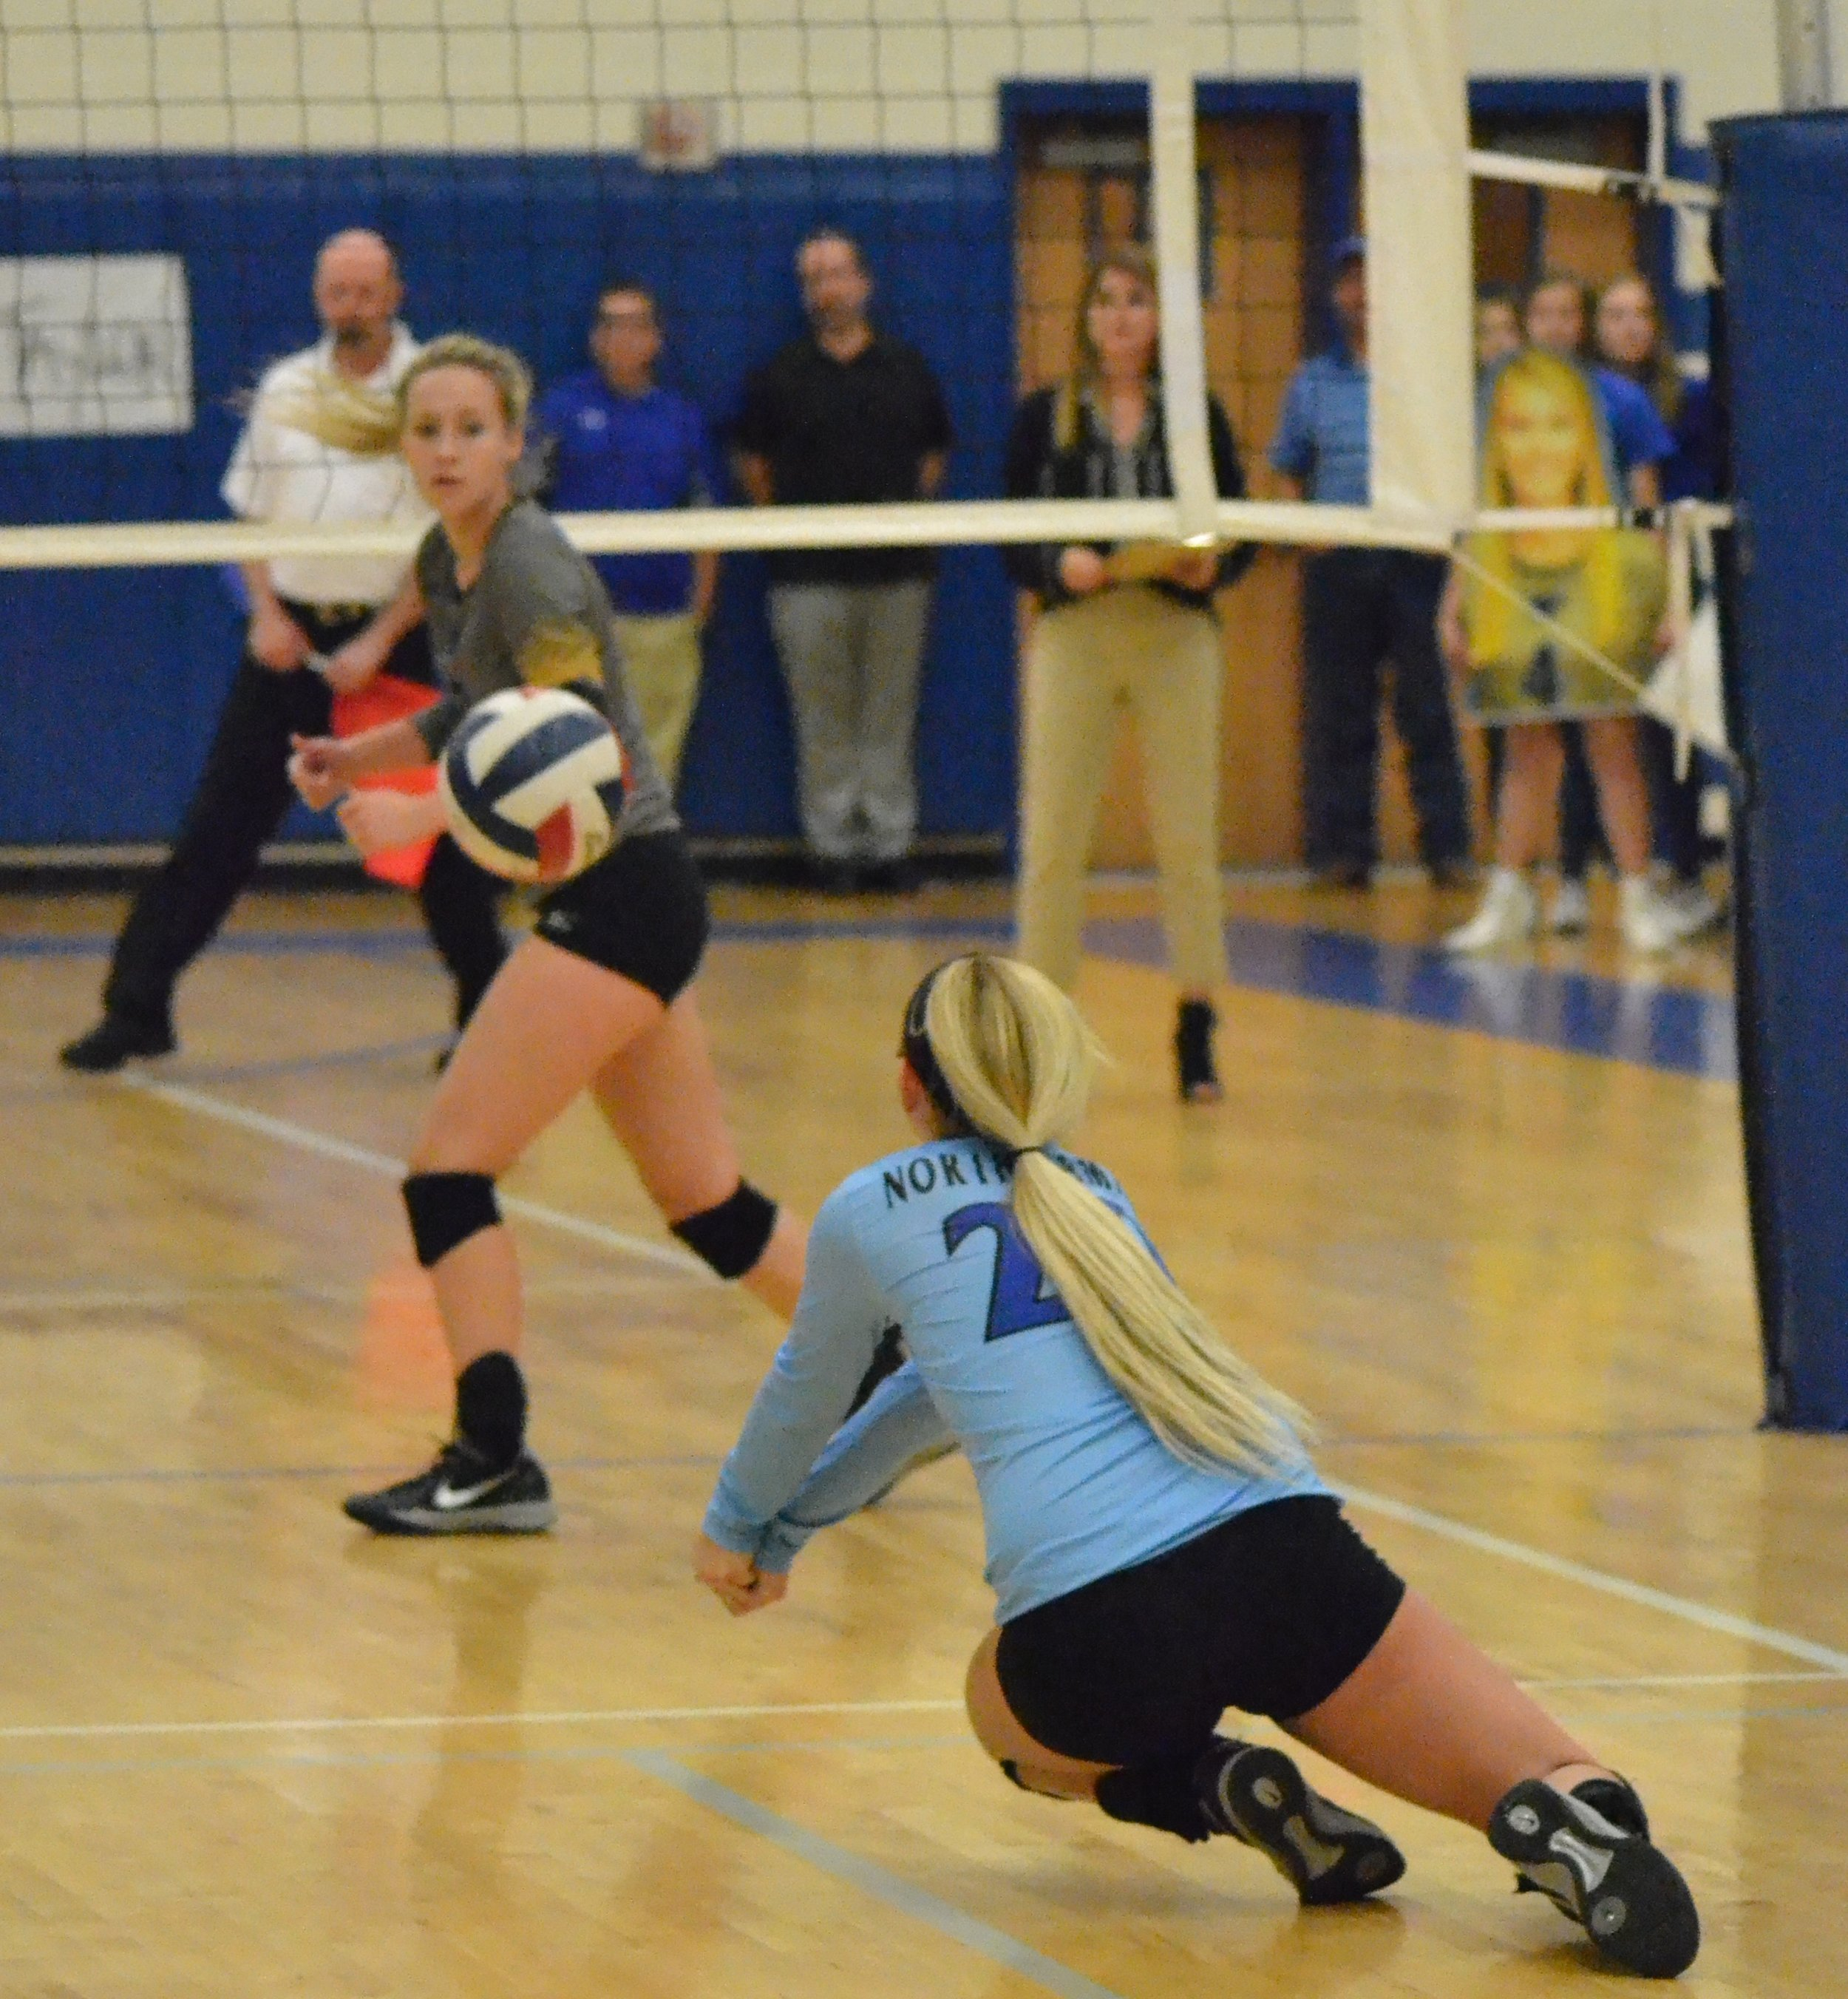 (Photo by Beverly White) Natalie Allen (20) diving for the ball as Haley Porter watches.